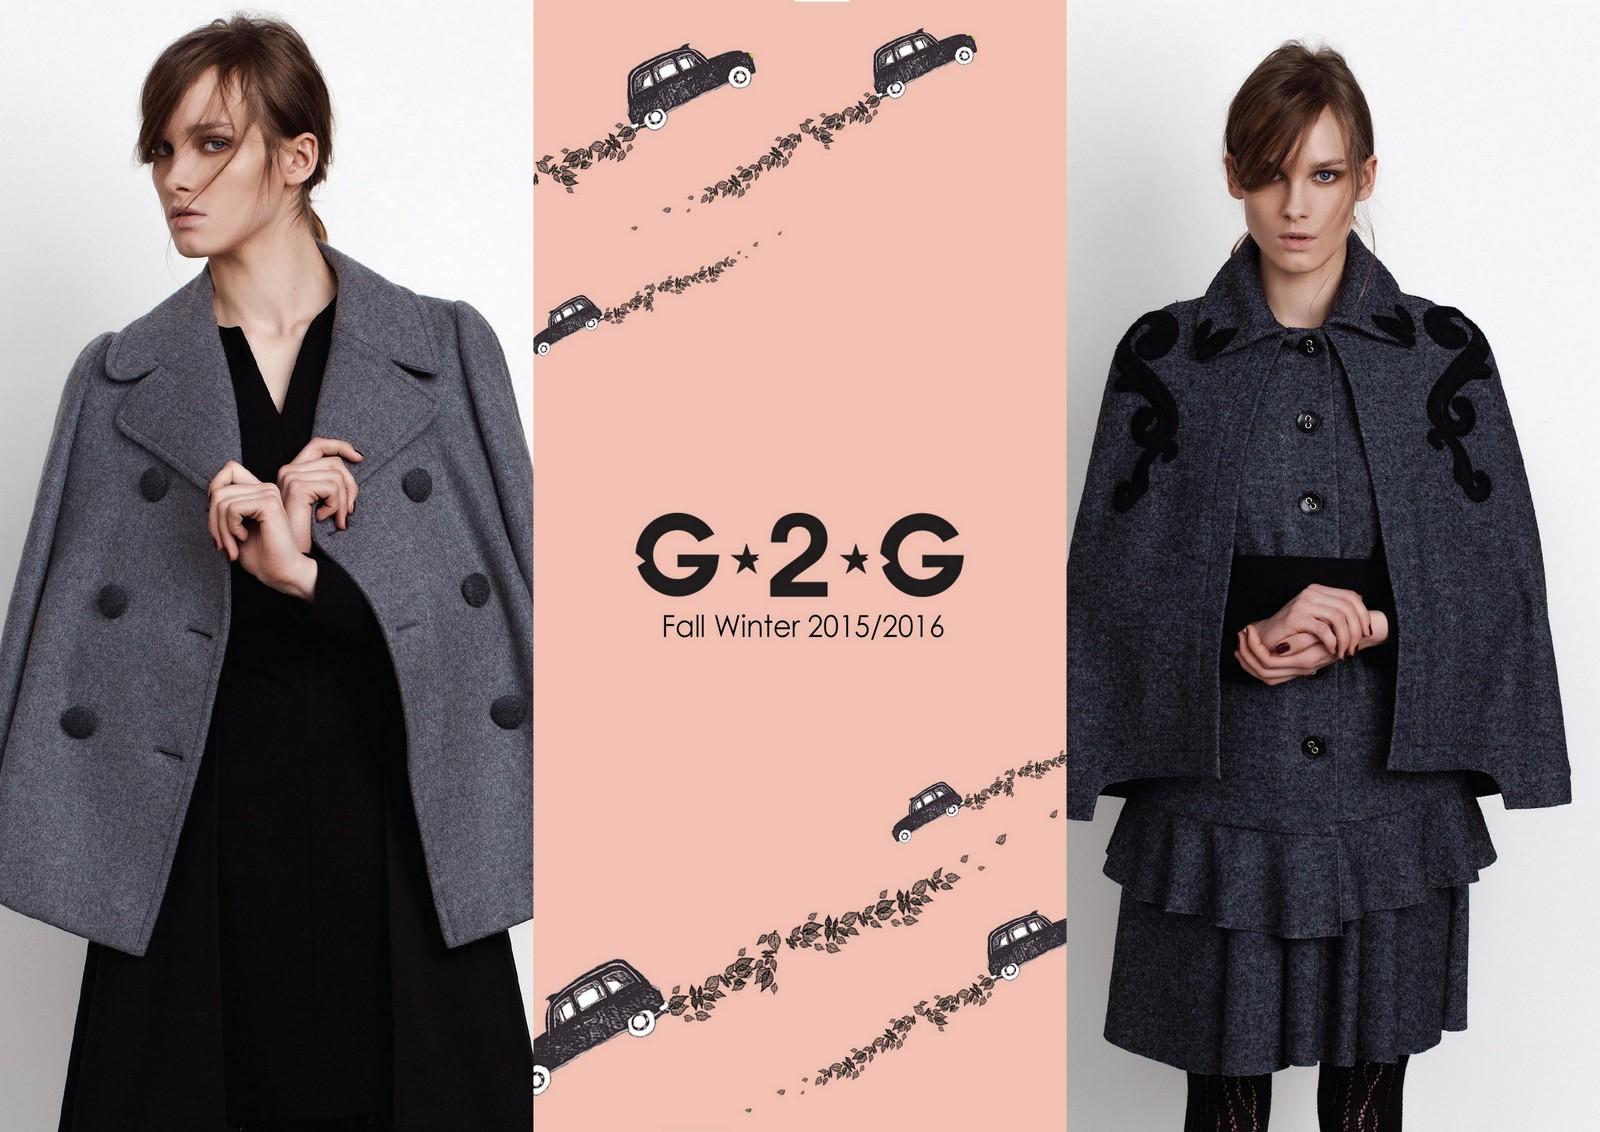 G2G Autumn/Winter 15-16 , g2g dream